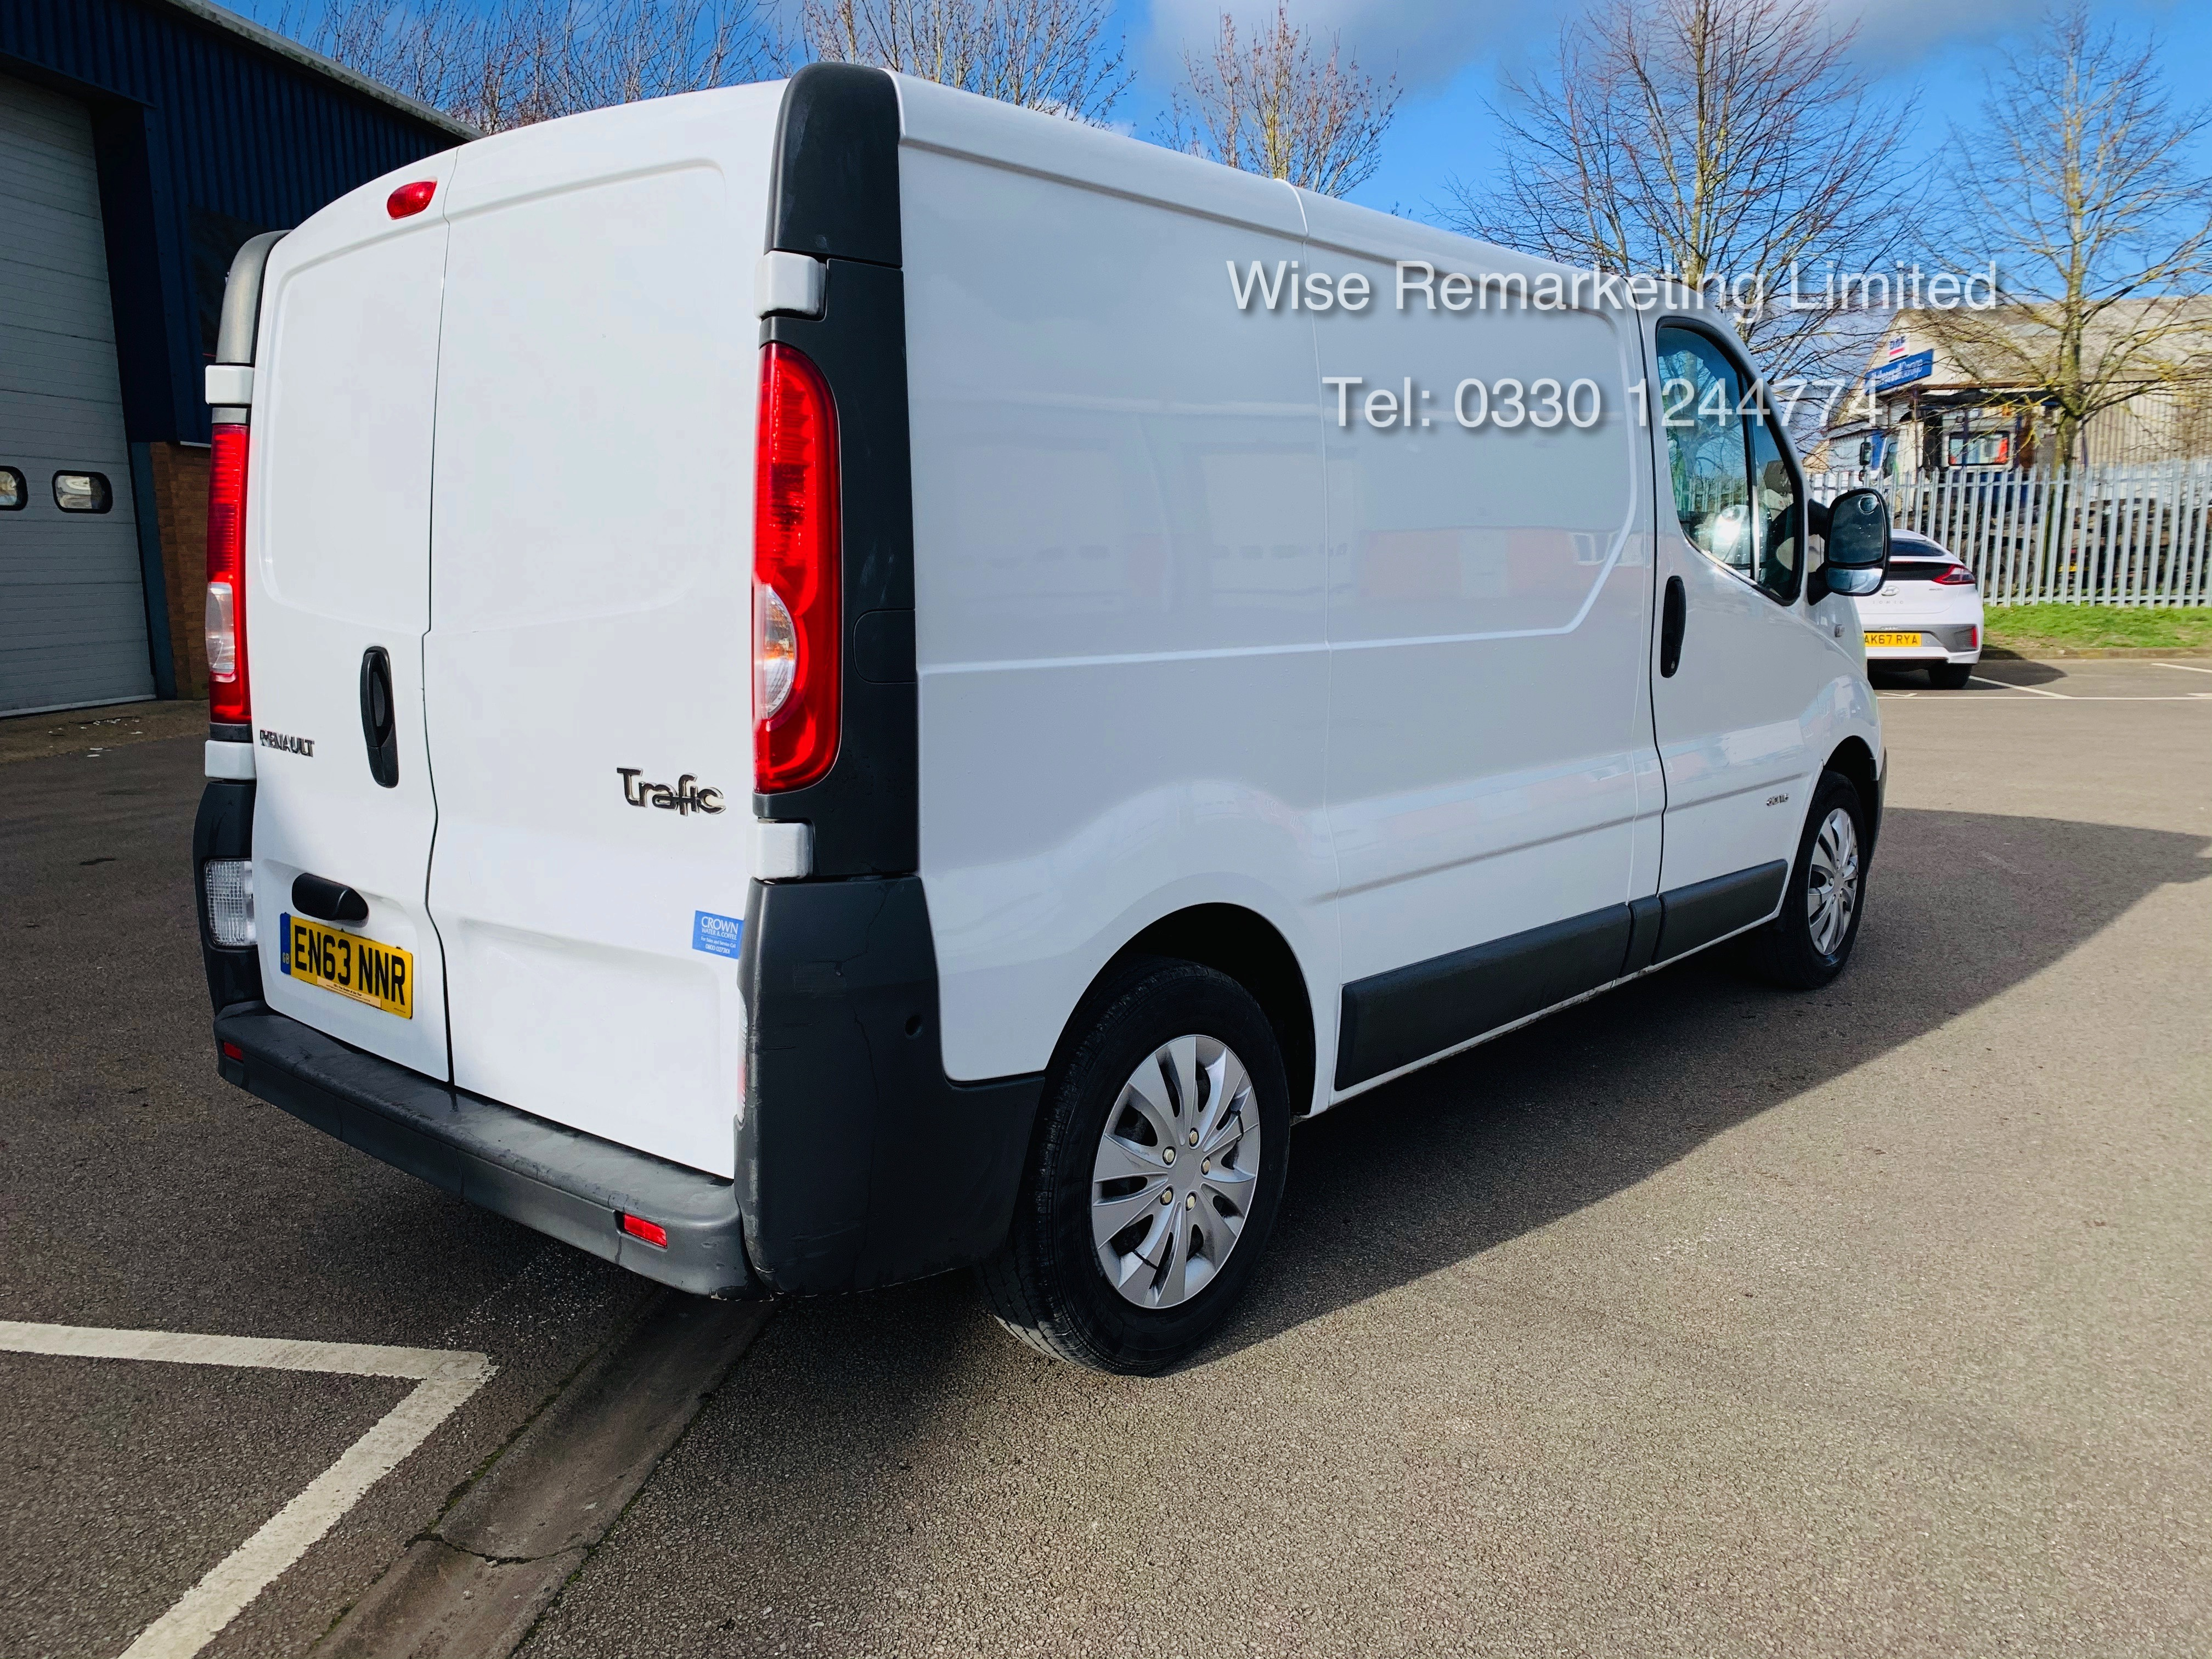 Renault Trafic 2.0 DCI (115 BHP) - 6 Speed - 2014 Reg - Ply Lined - - Image 7 of 21